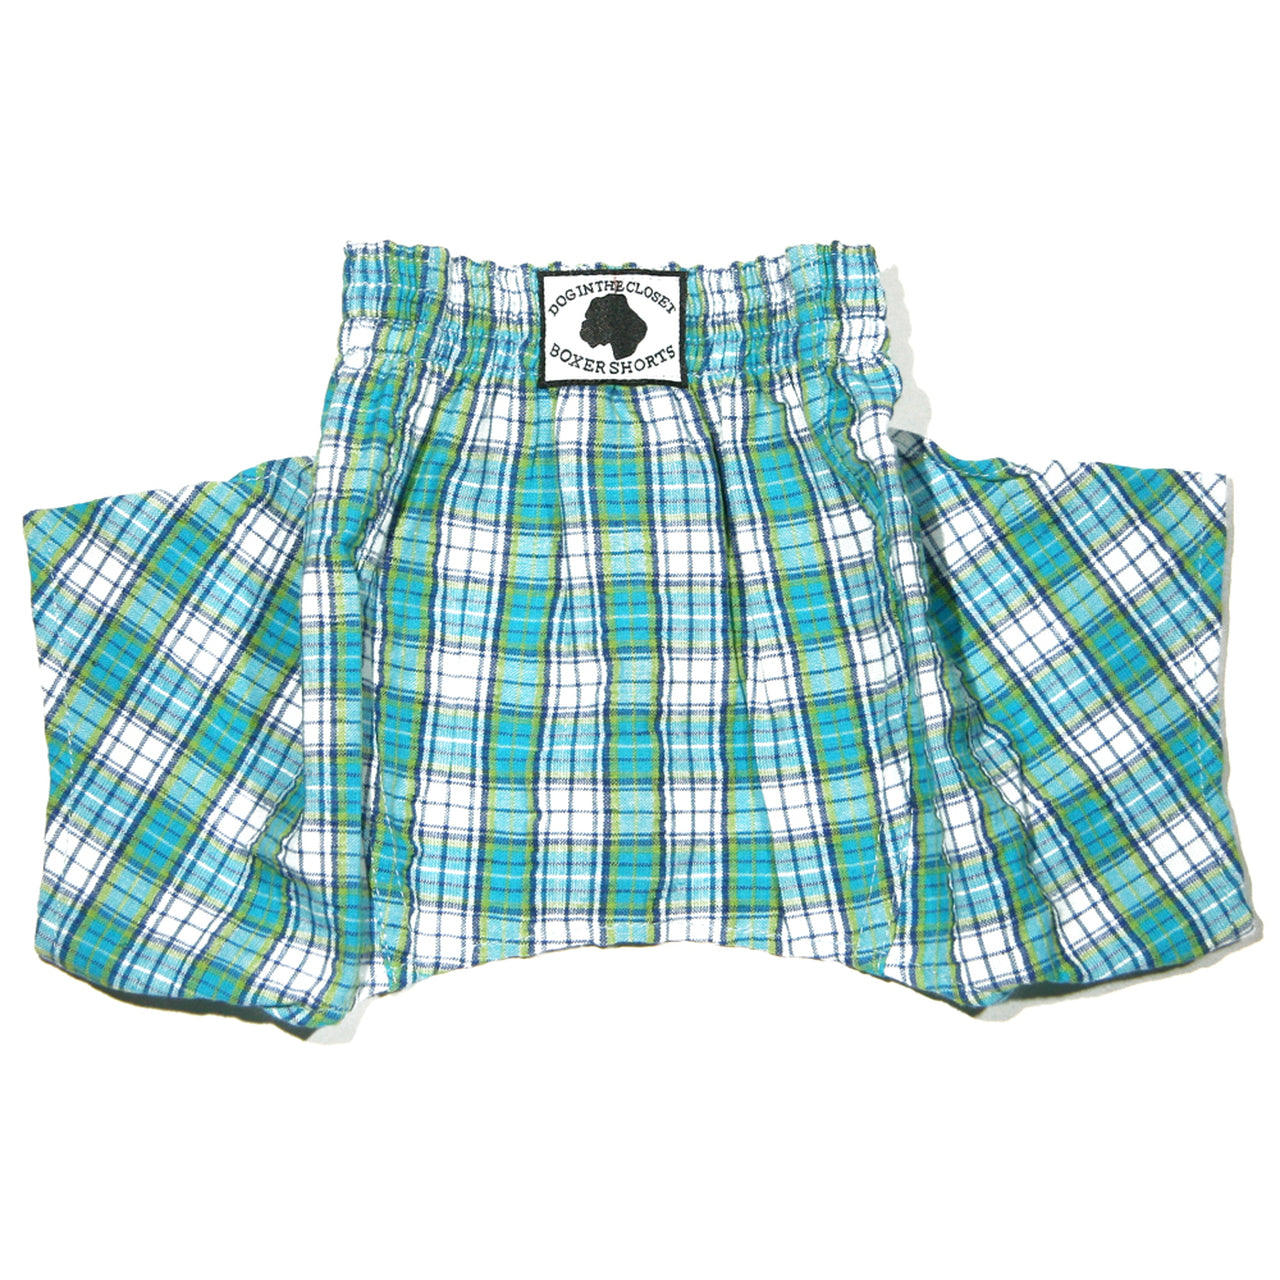 DOG IN THE CLOSET BOXER SHORTS FOR DOGS BLUE SEERSUCKER